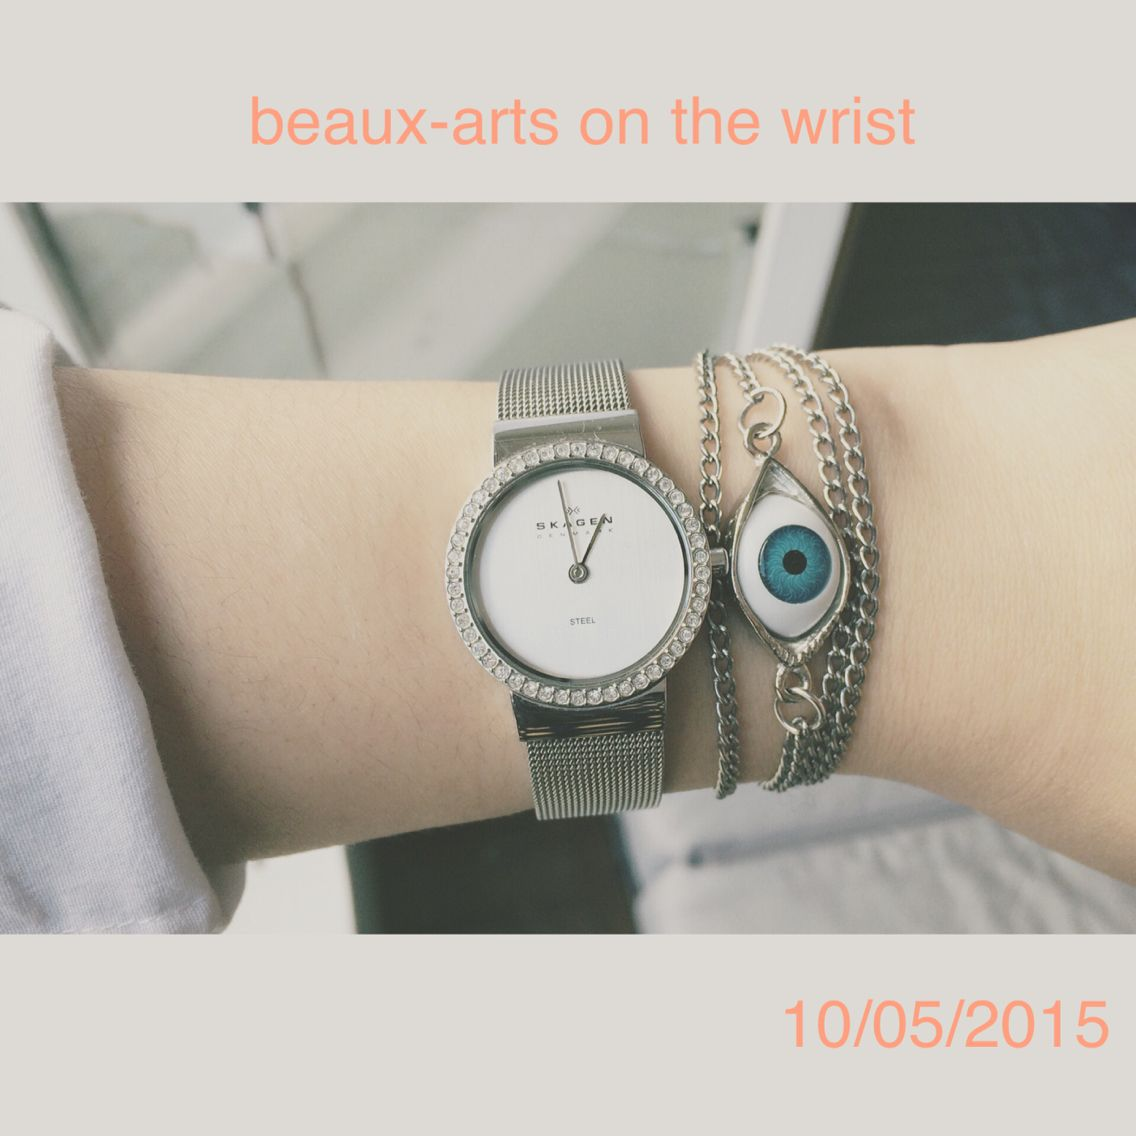 Beaux-art on the wrist